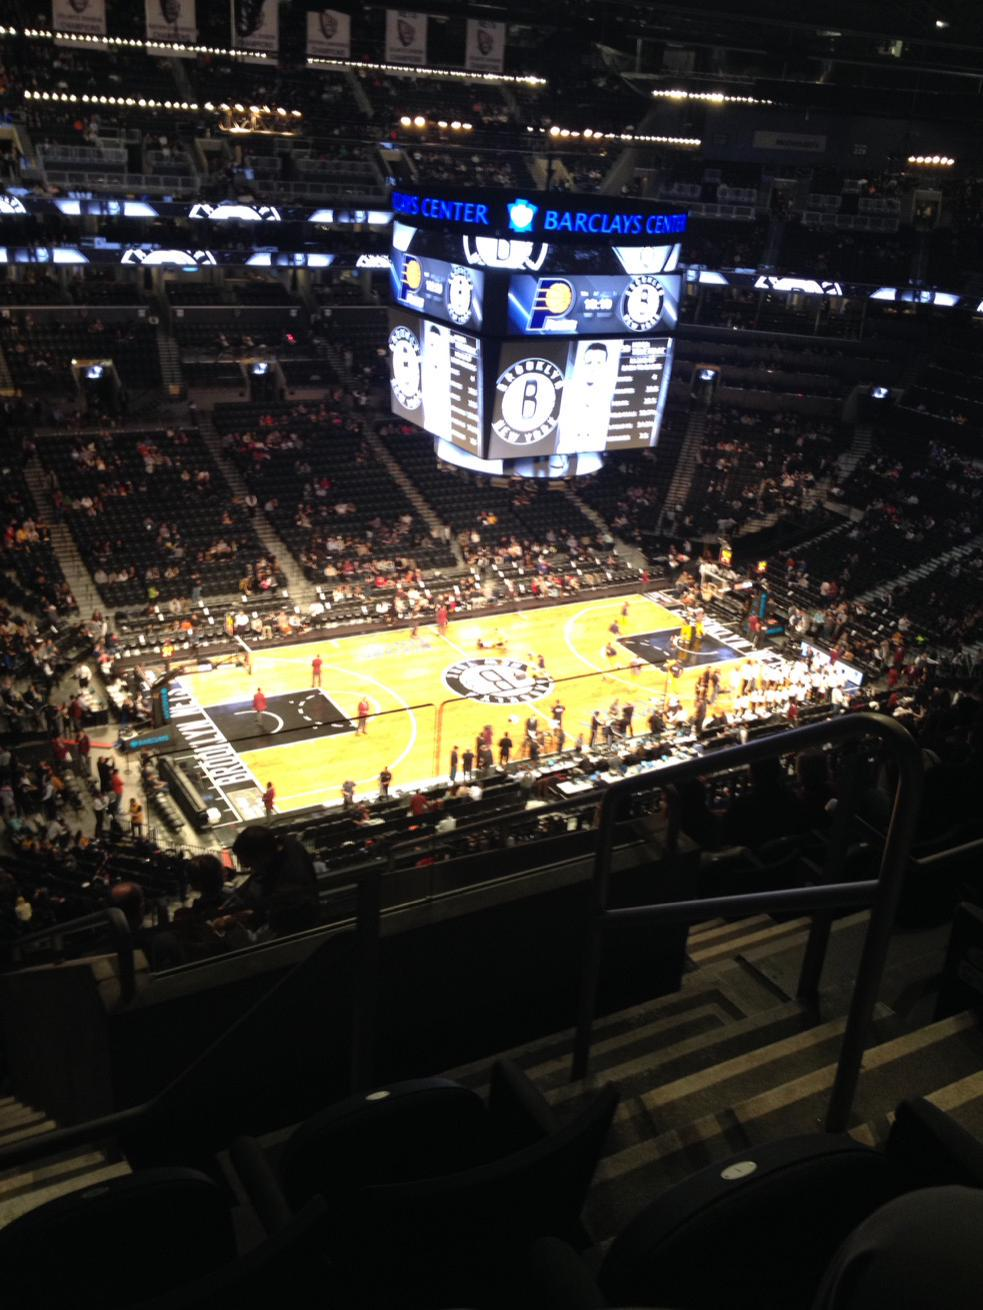 Seat view from Section 211 at the Barclays Center, home of the Brooklyn Nets